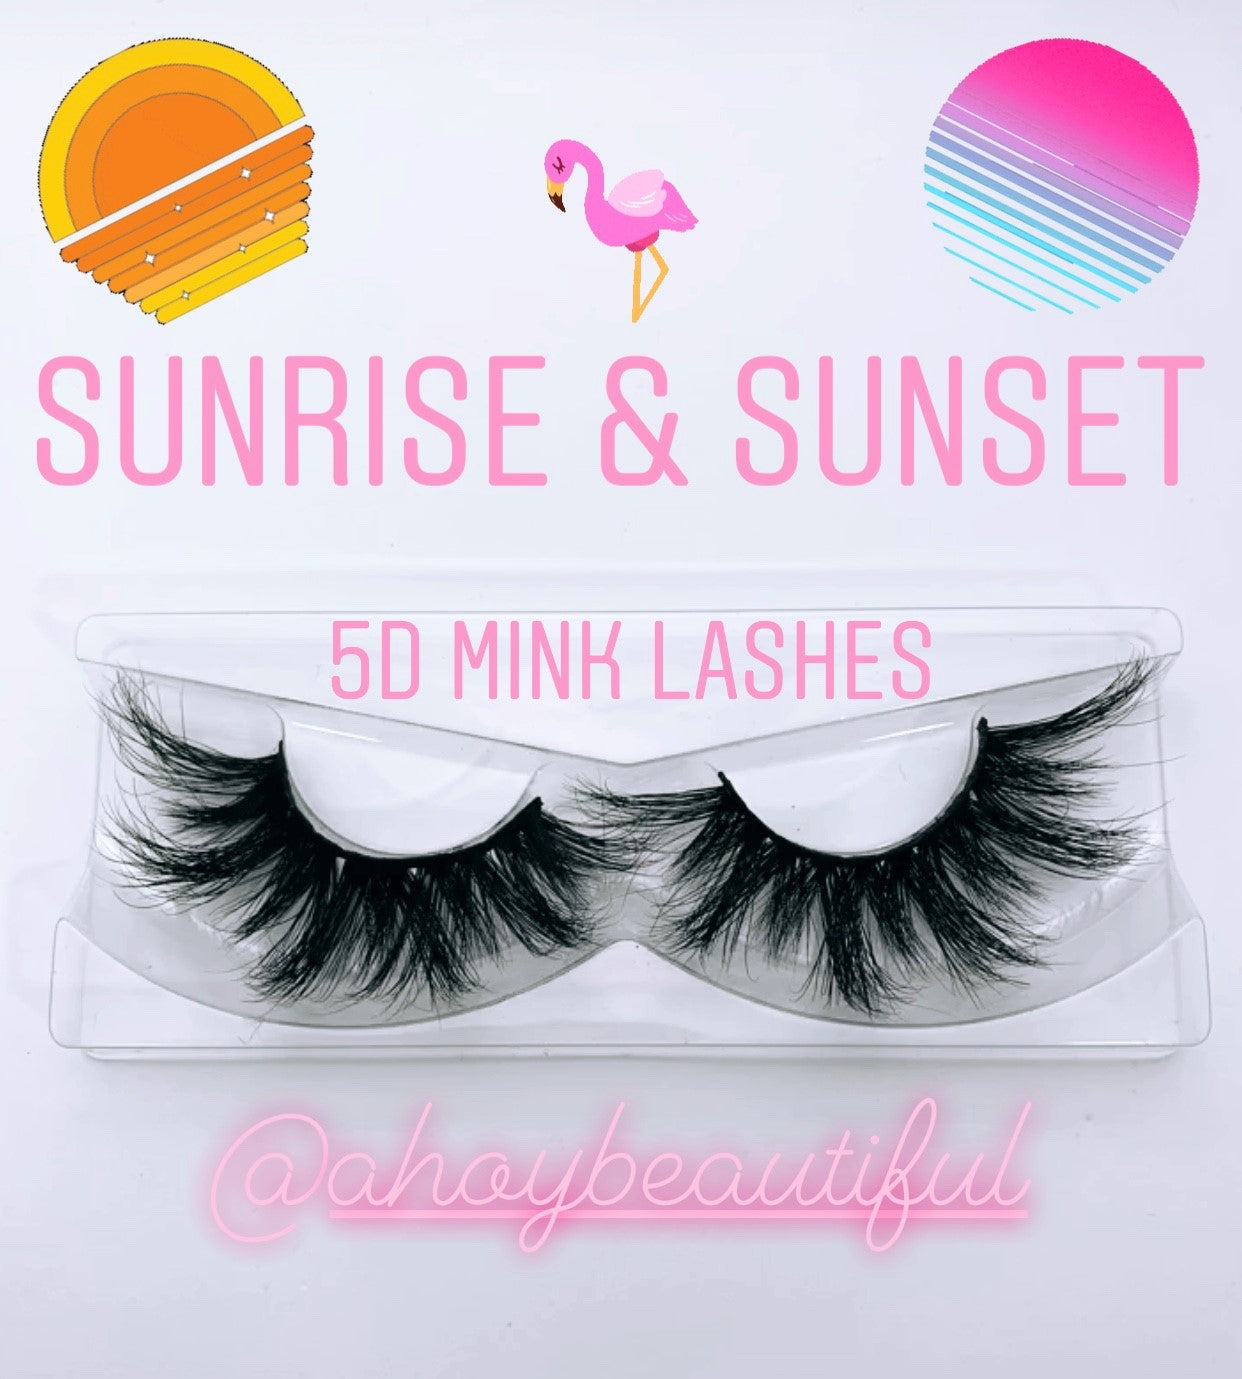 Sunrise & Sunset Vacation Luxury Mink Lashes